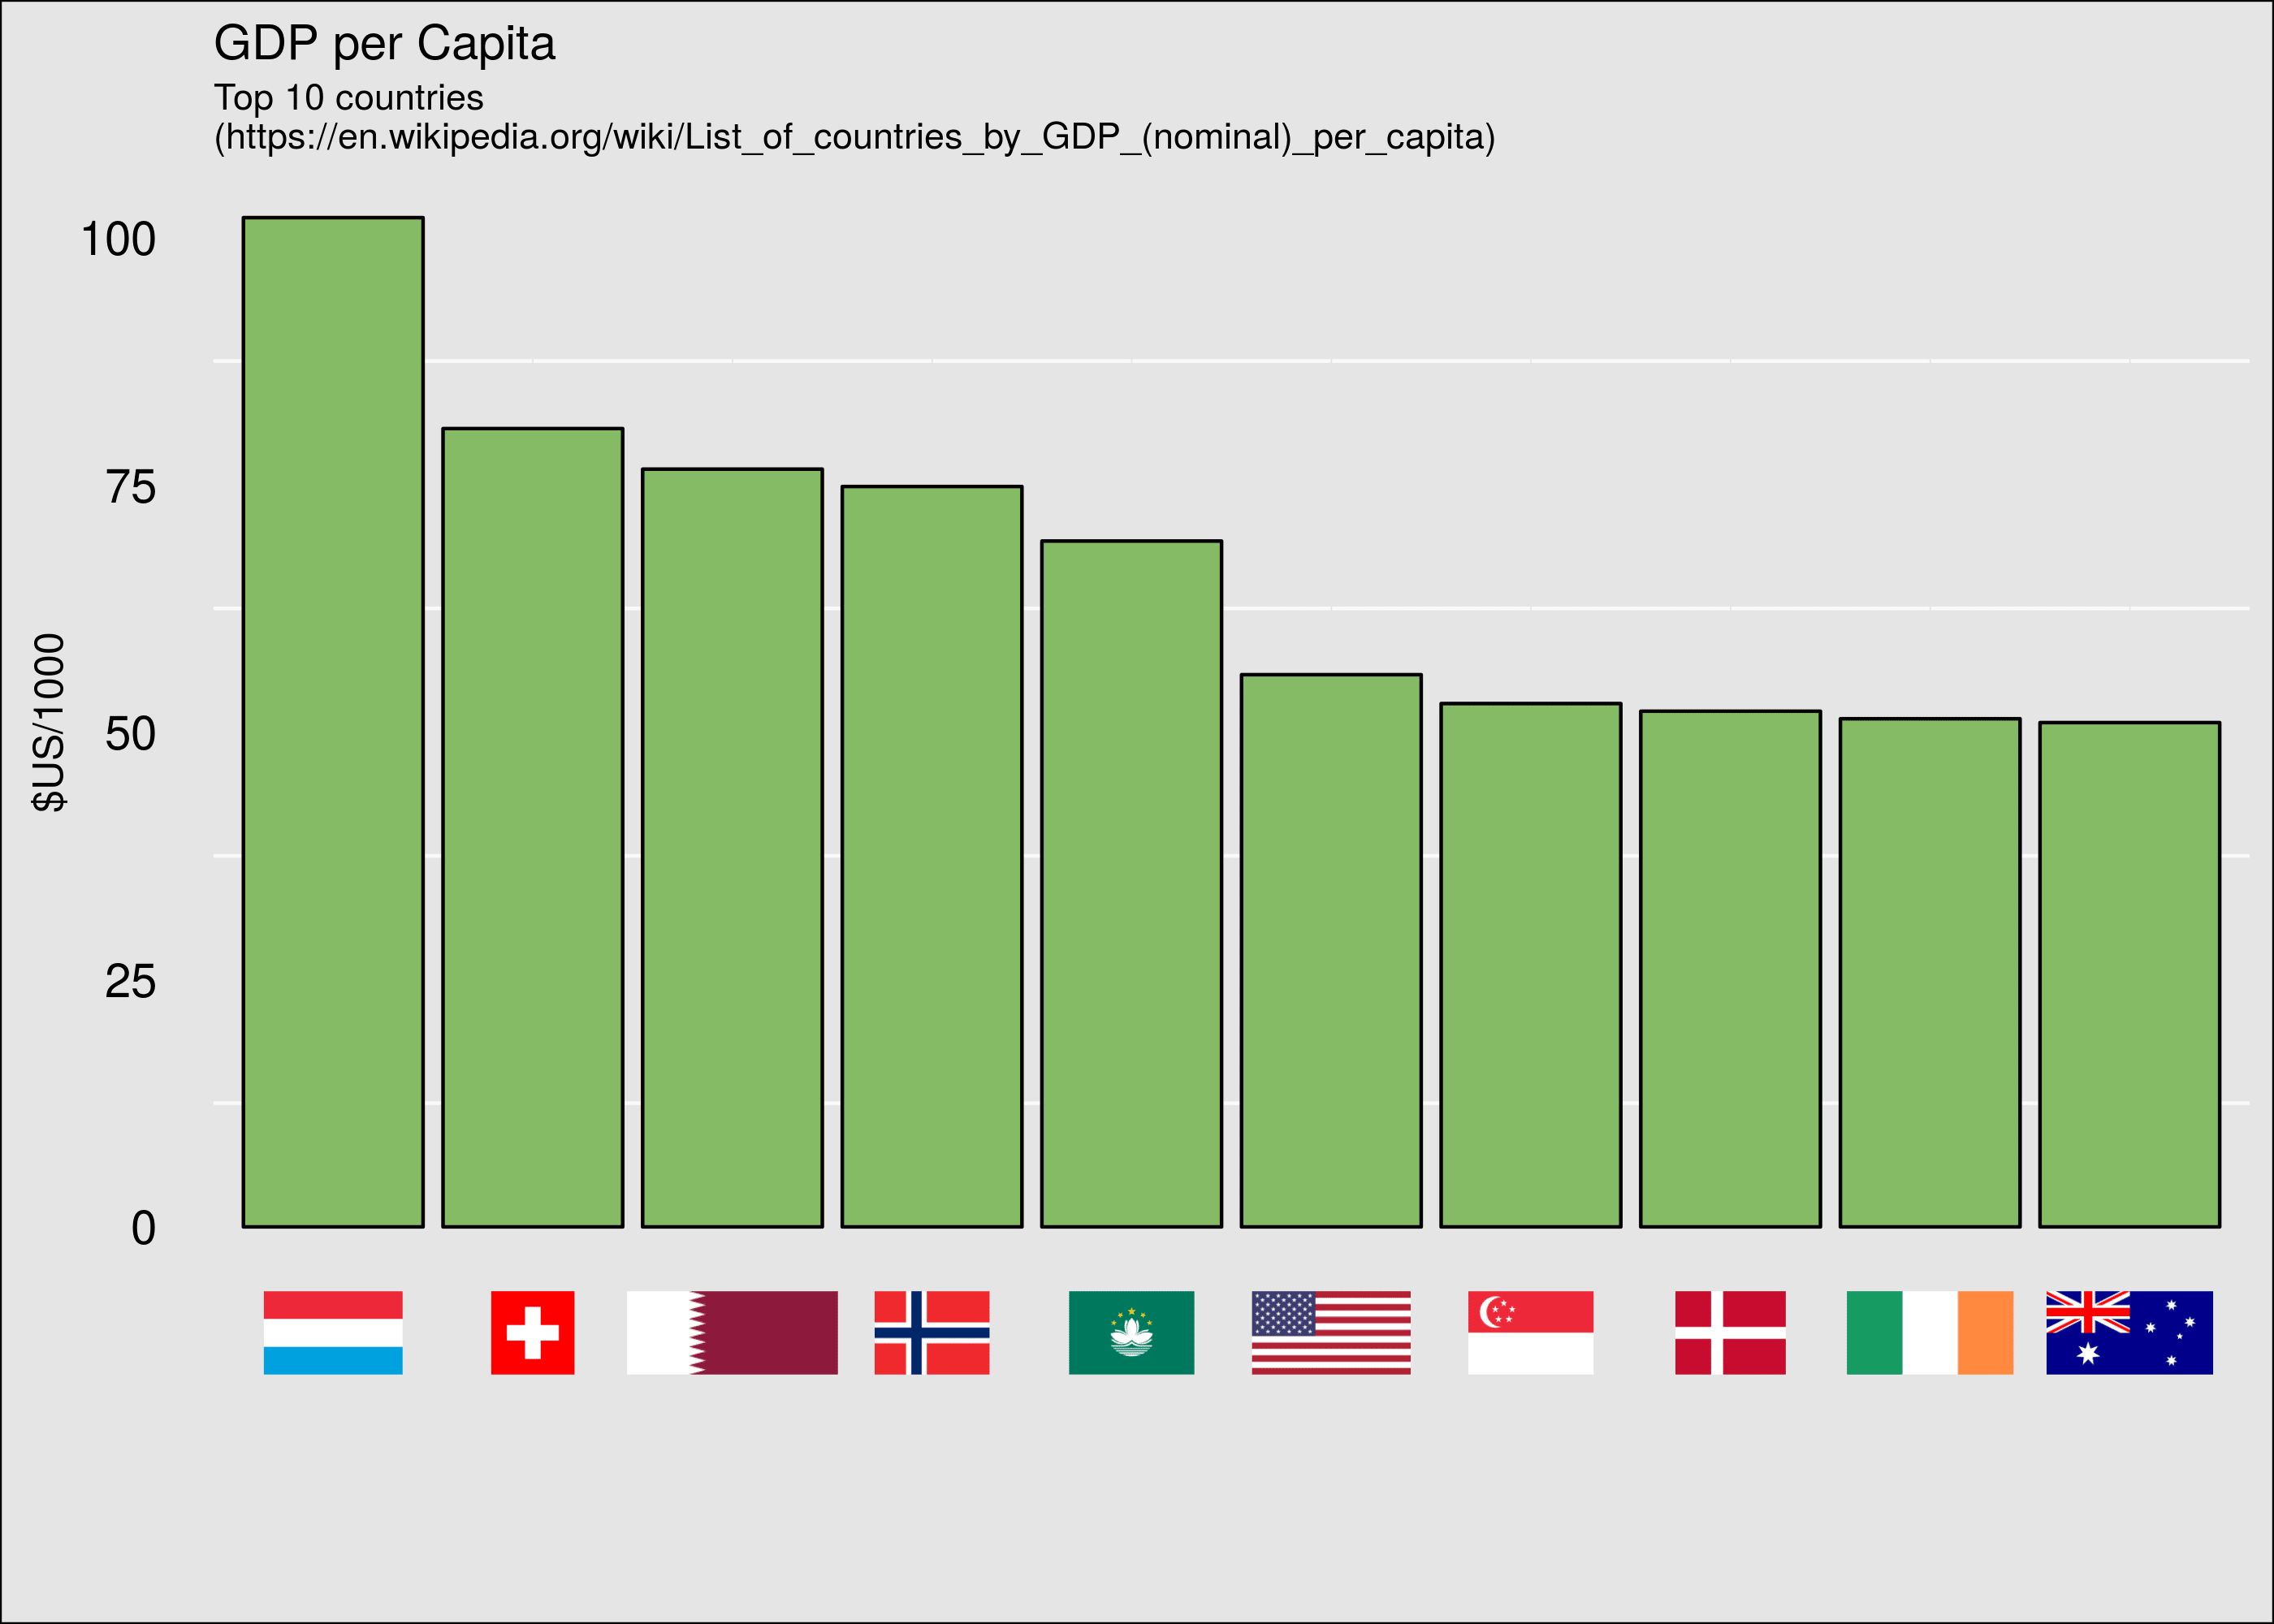 GDP per capita with flags for x-axis labels. This was harder to make than it seemed, but I've since added a little more flexibility to it.